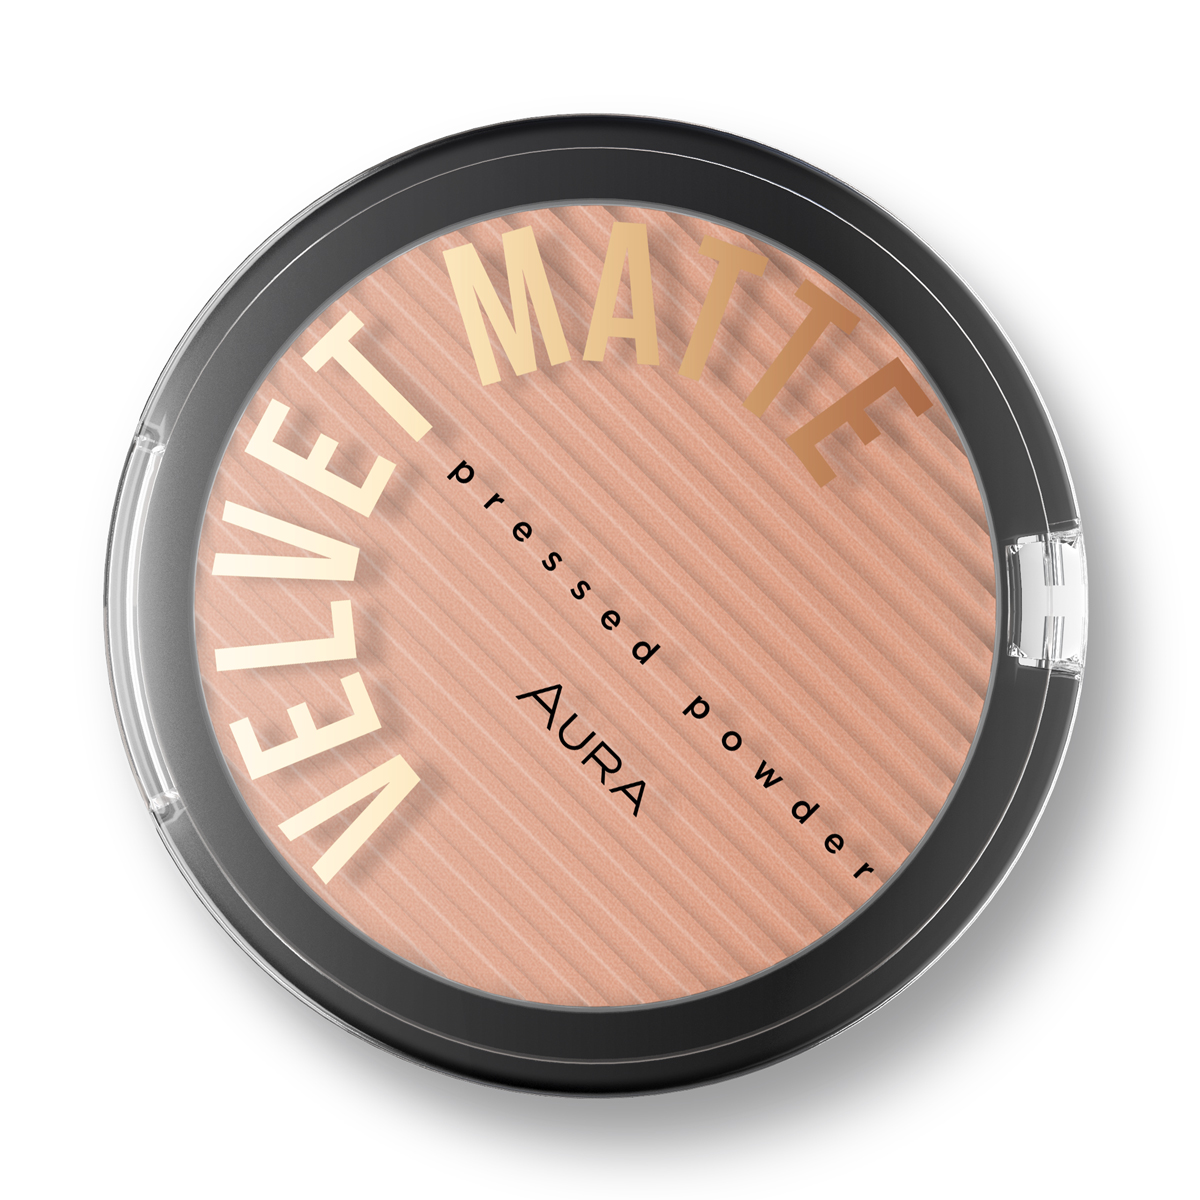 VELVET MATTE pressed powder 315 Toffee